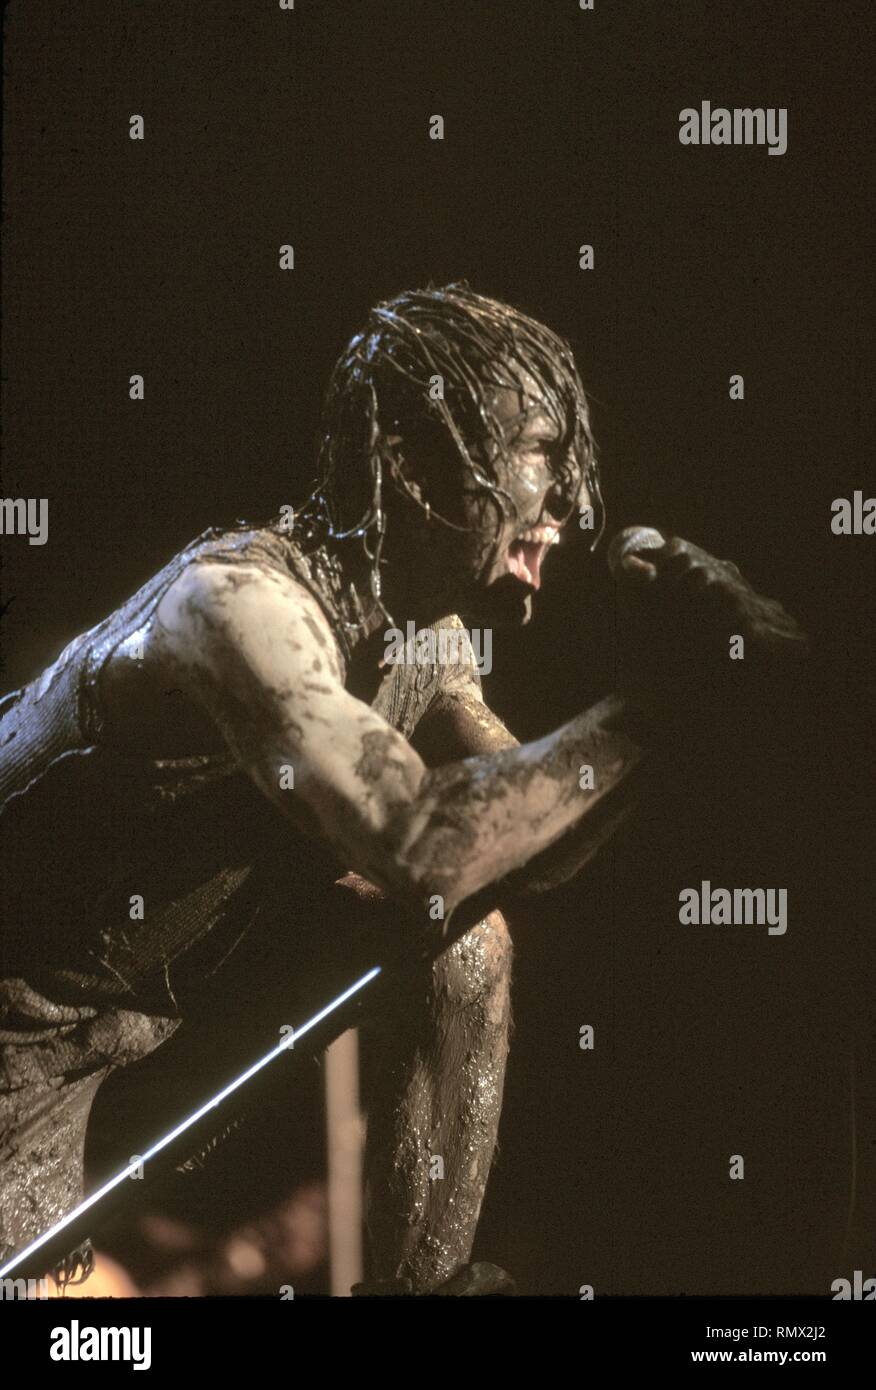 Singer Trent Reznor of the Industrial rock act Nine Inch Nails is shown performing on stage at Woodstock '94. - Stock Image